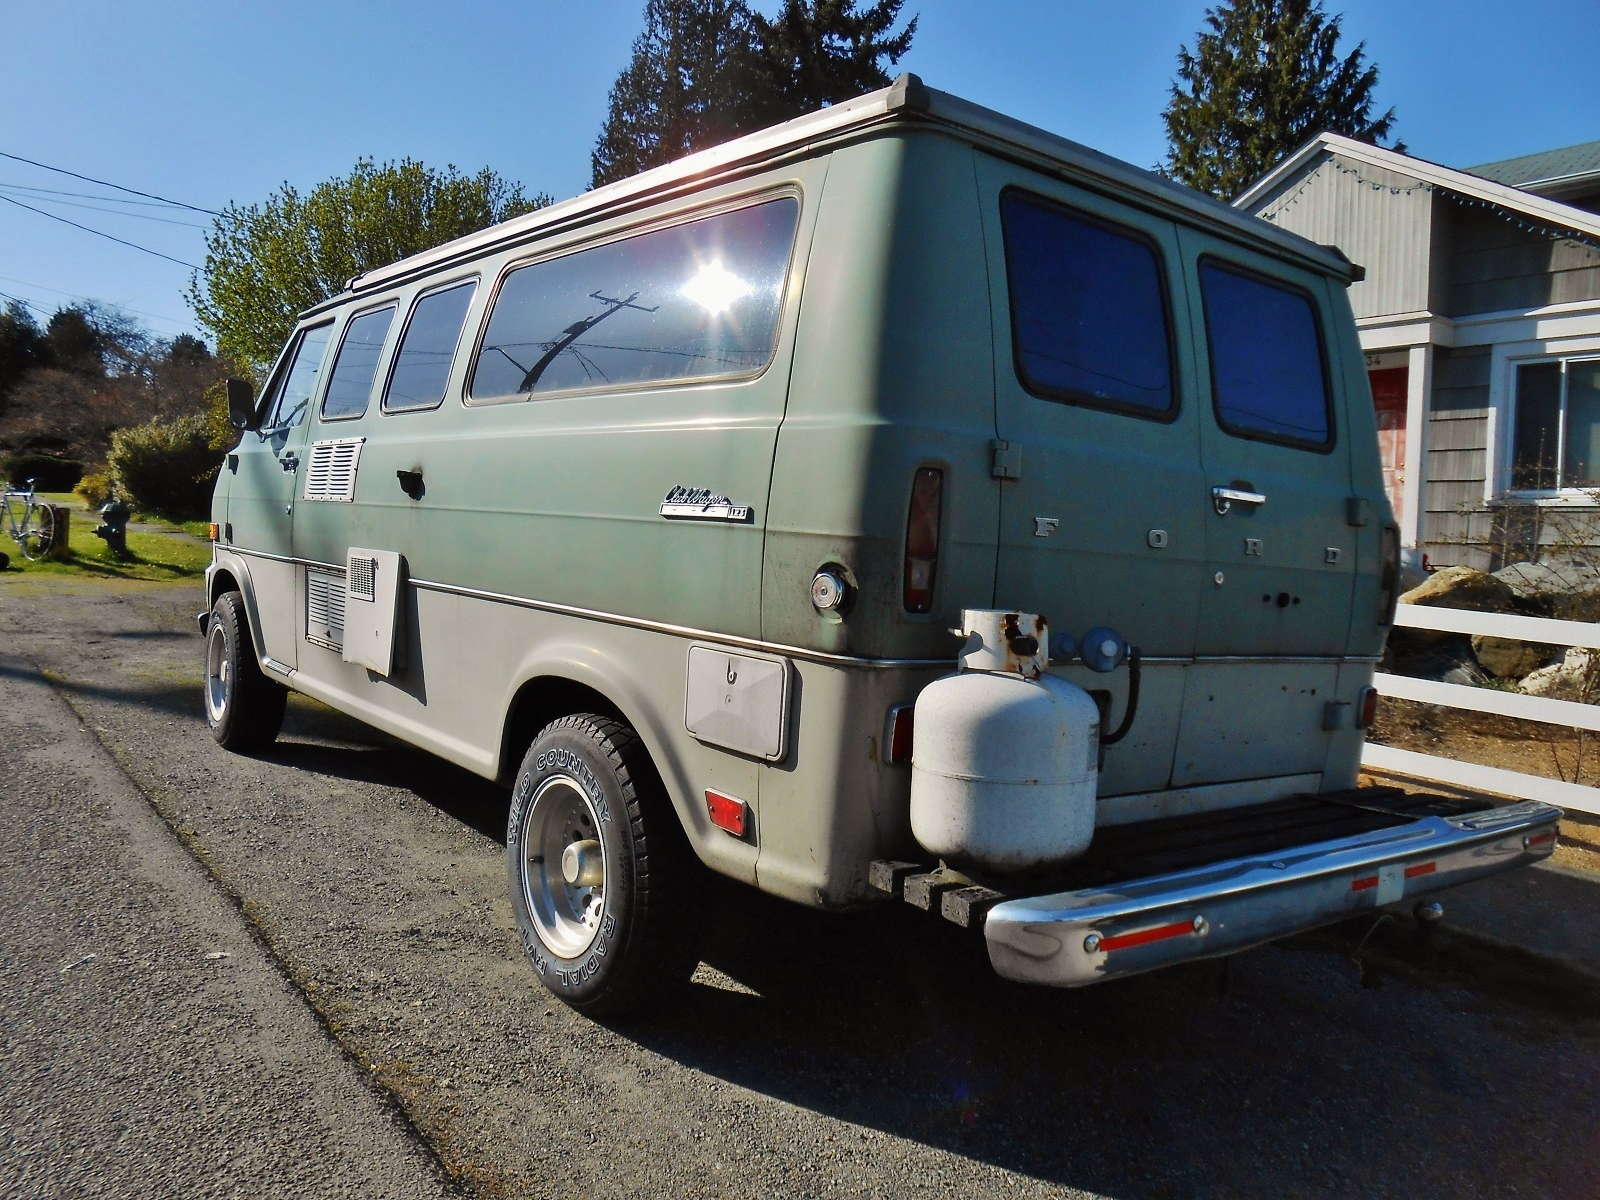 medium resolution of in 1969 dodge and chevy both still had cab over engine vans this luxury club wagon has been converted into a camper and looks great in white and green